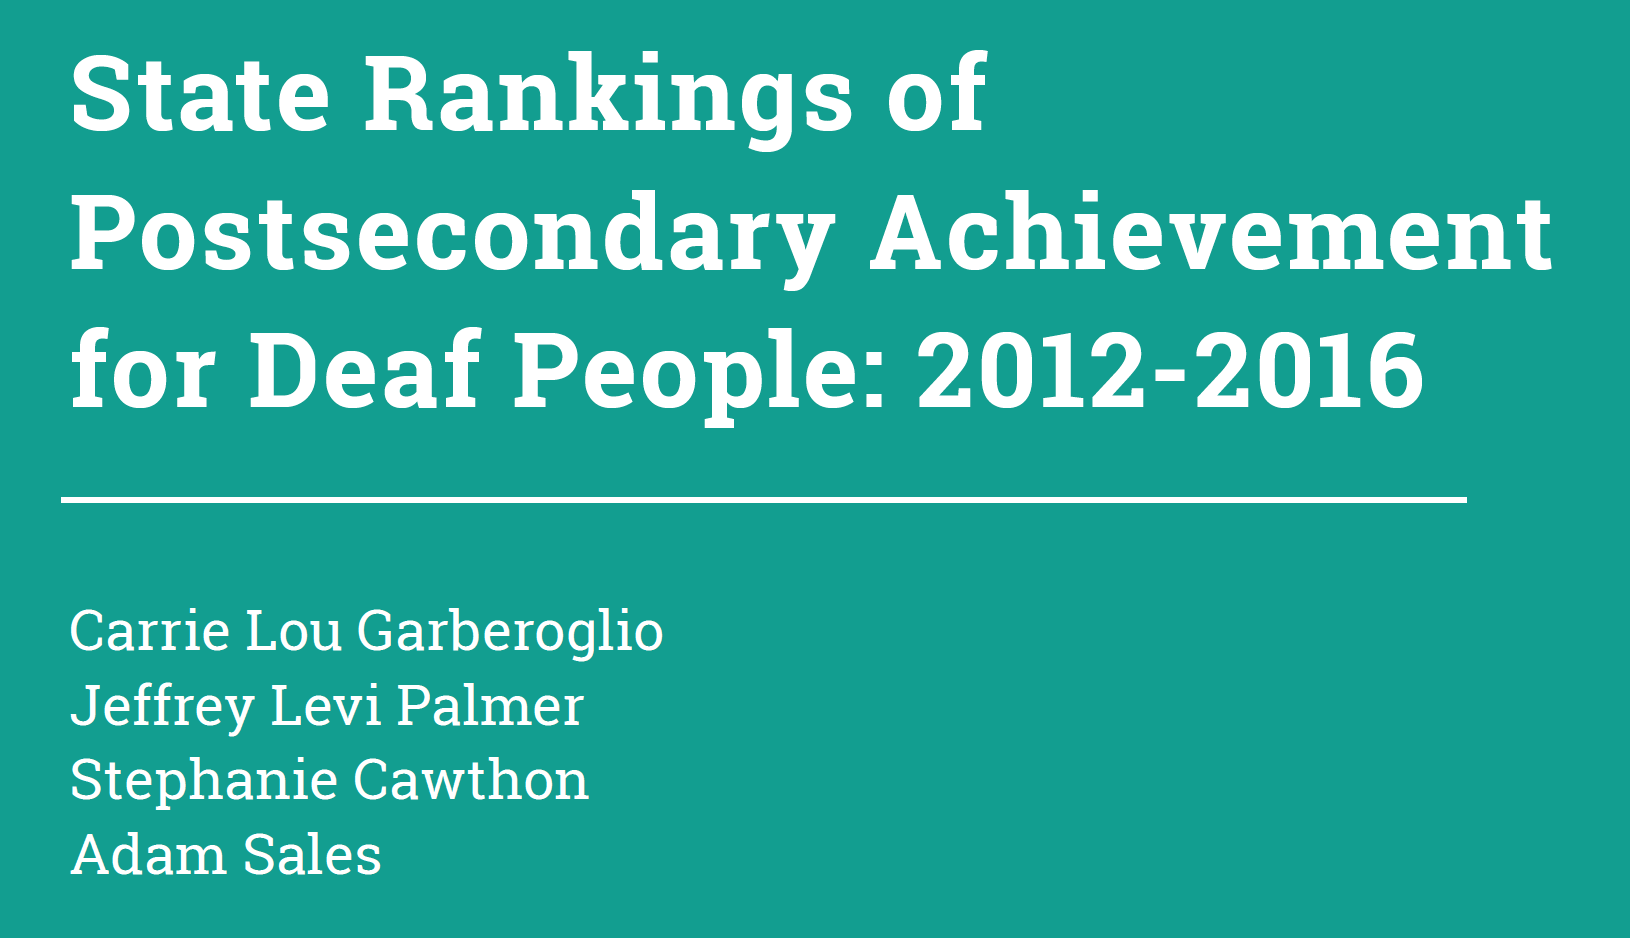 Cover image for the report State Rankings of Postsecondary Achievement for Deaf People: 2012-2016